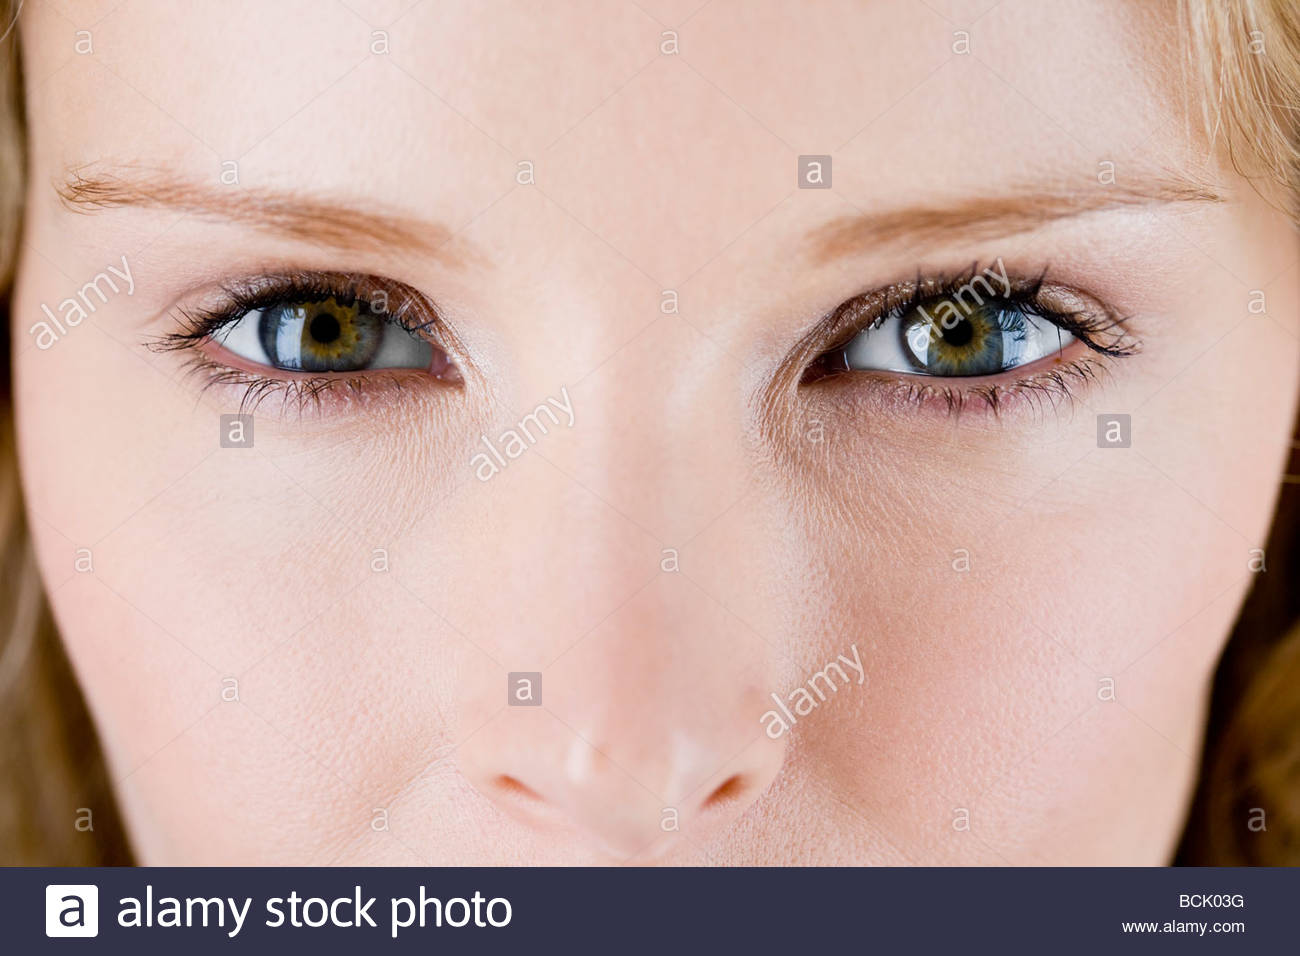 Close-up of a woman's face montrant yeux Photo Stock